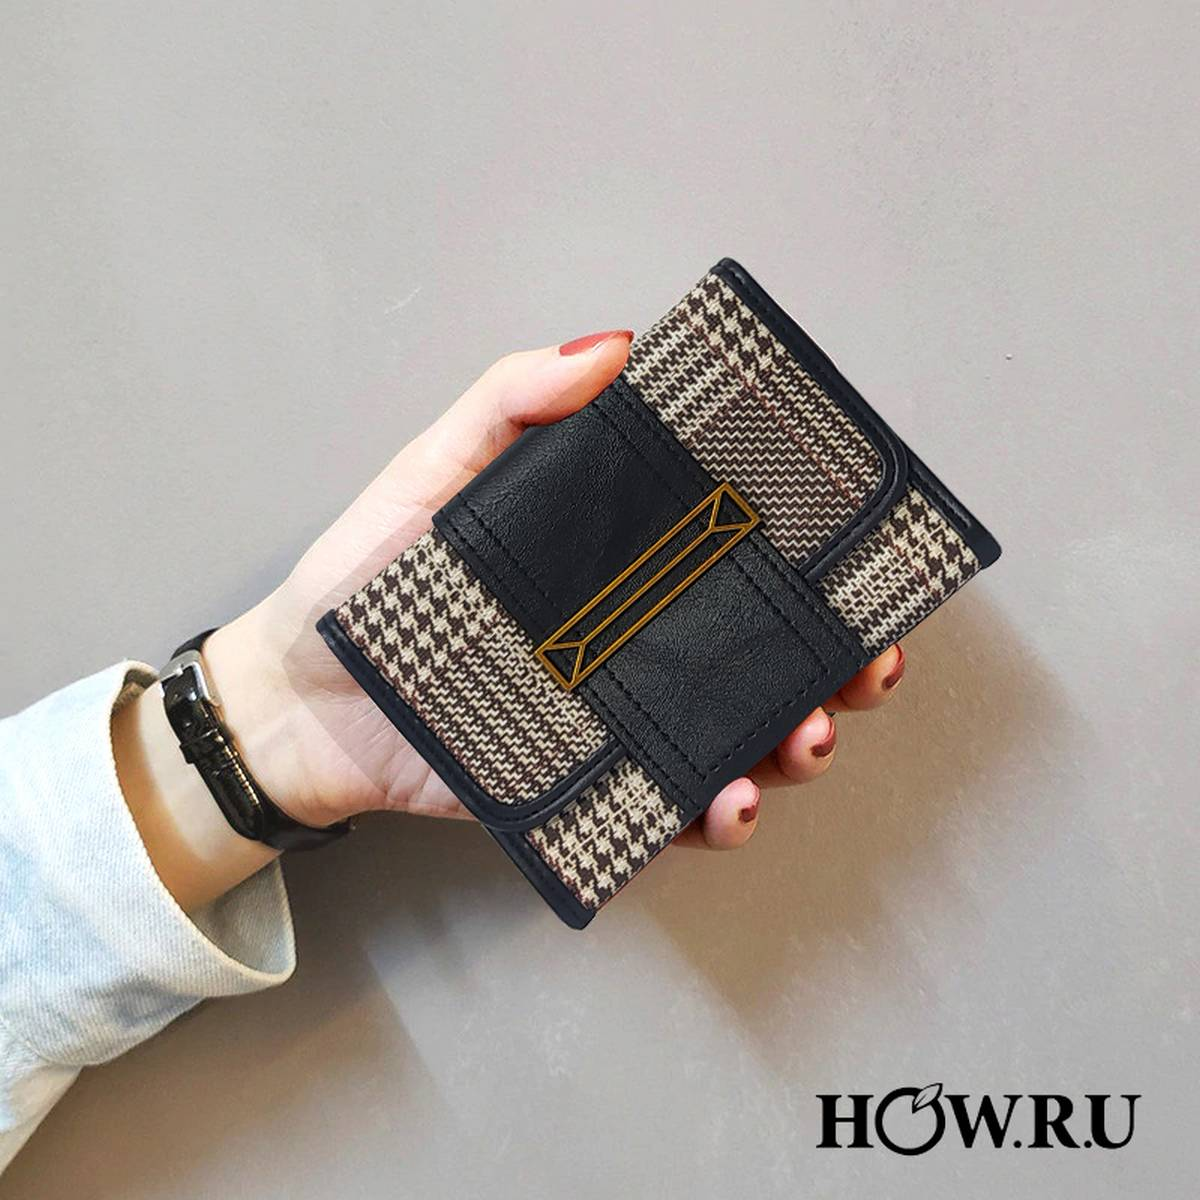 HOW.R.U Mini Trifold Short Wallet Small Purse for Women and Girls